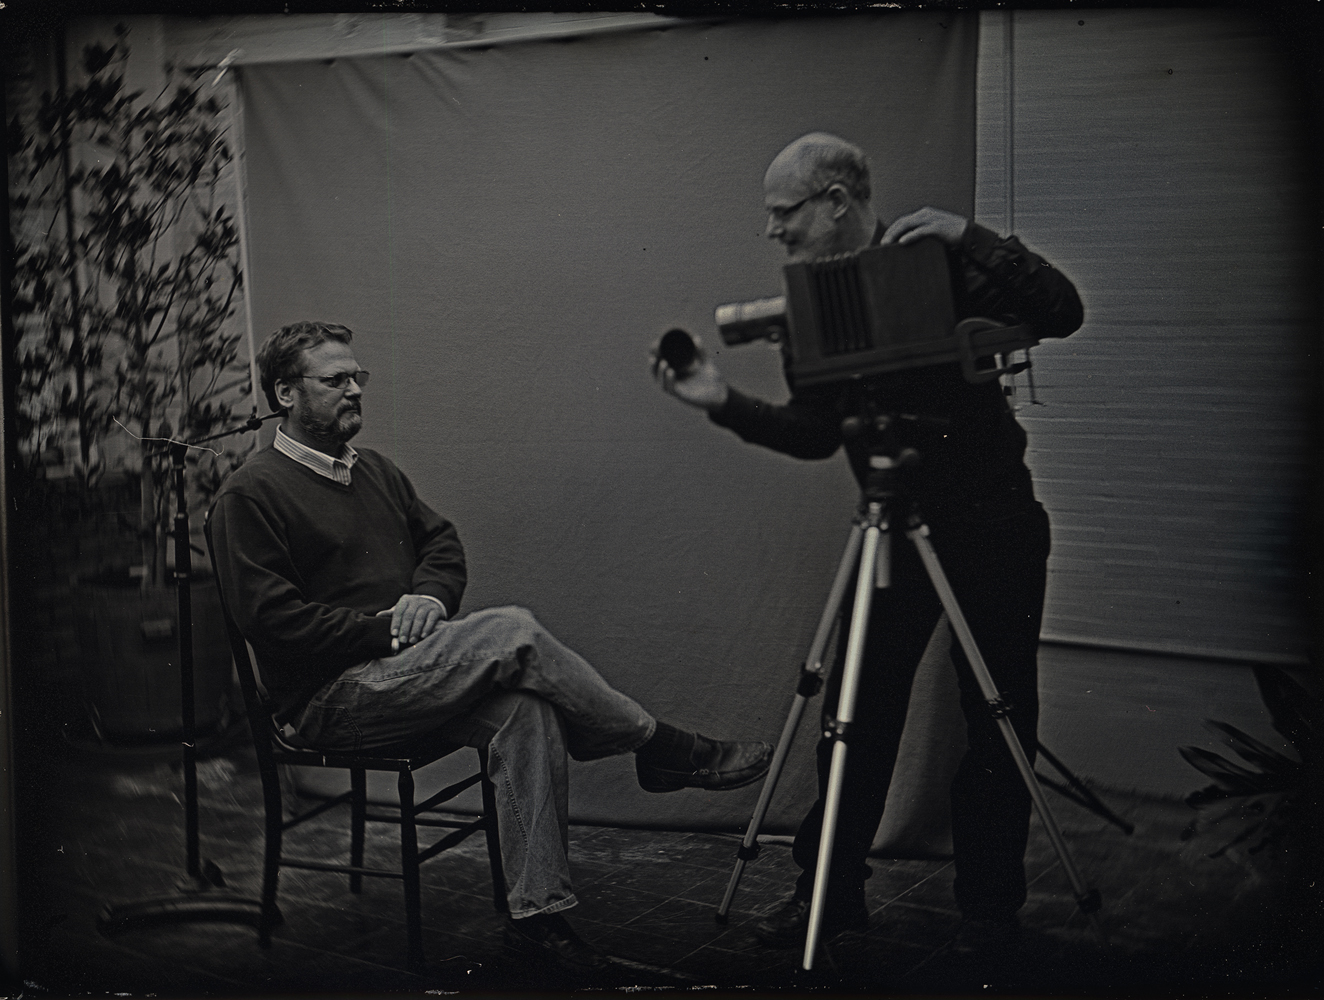 Daniel Carrillo, Mike Robinson and Mark Osterman, 2012, daguerreotype, 3.25 x 4.25 inches, $1800